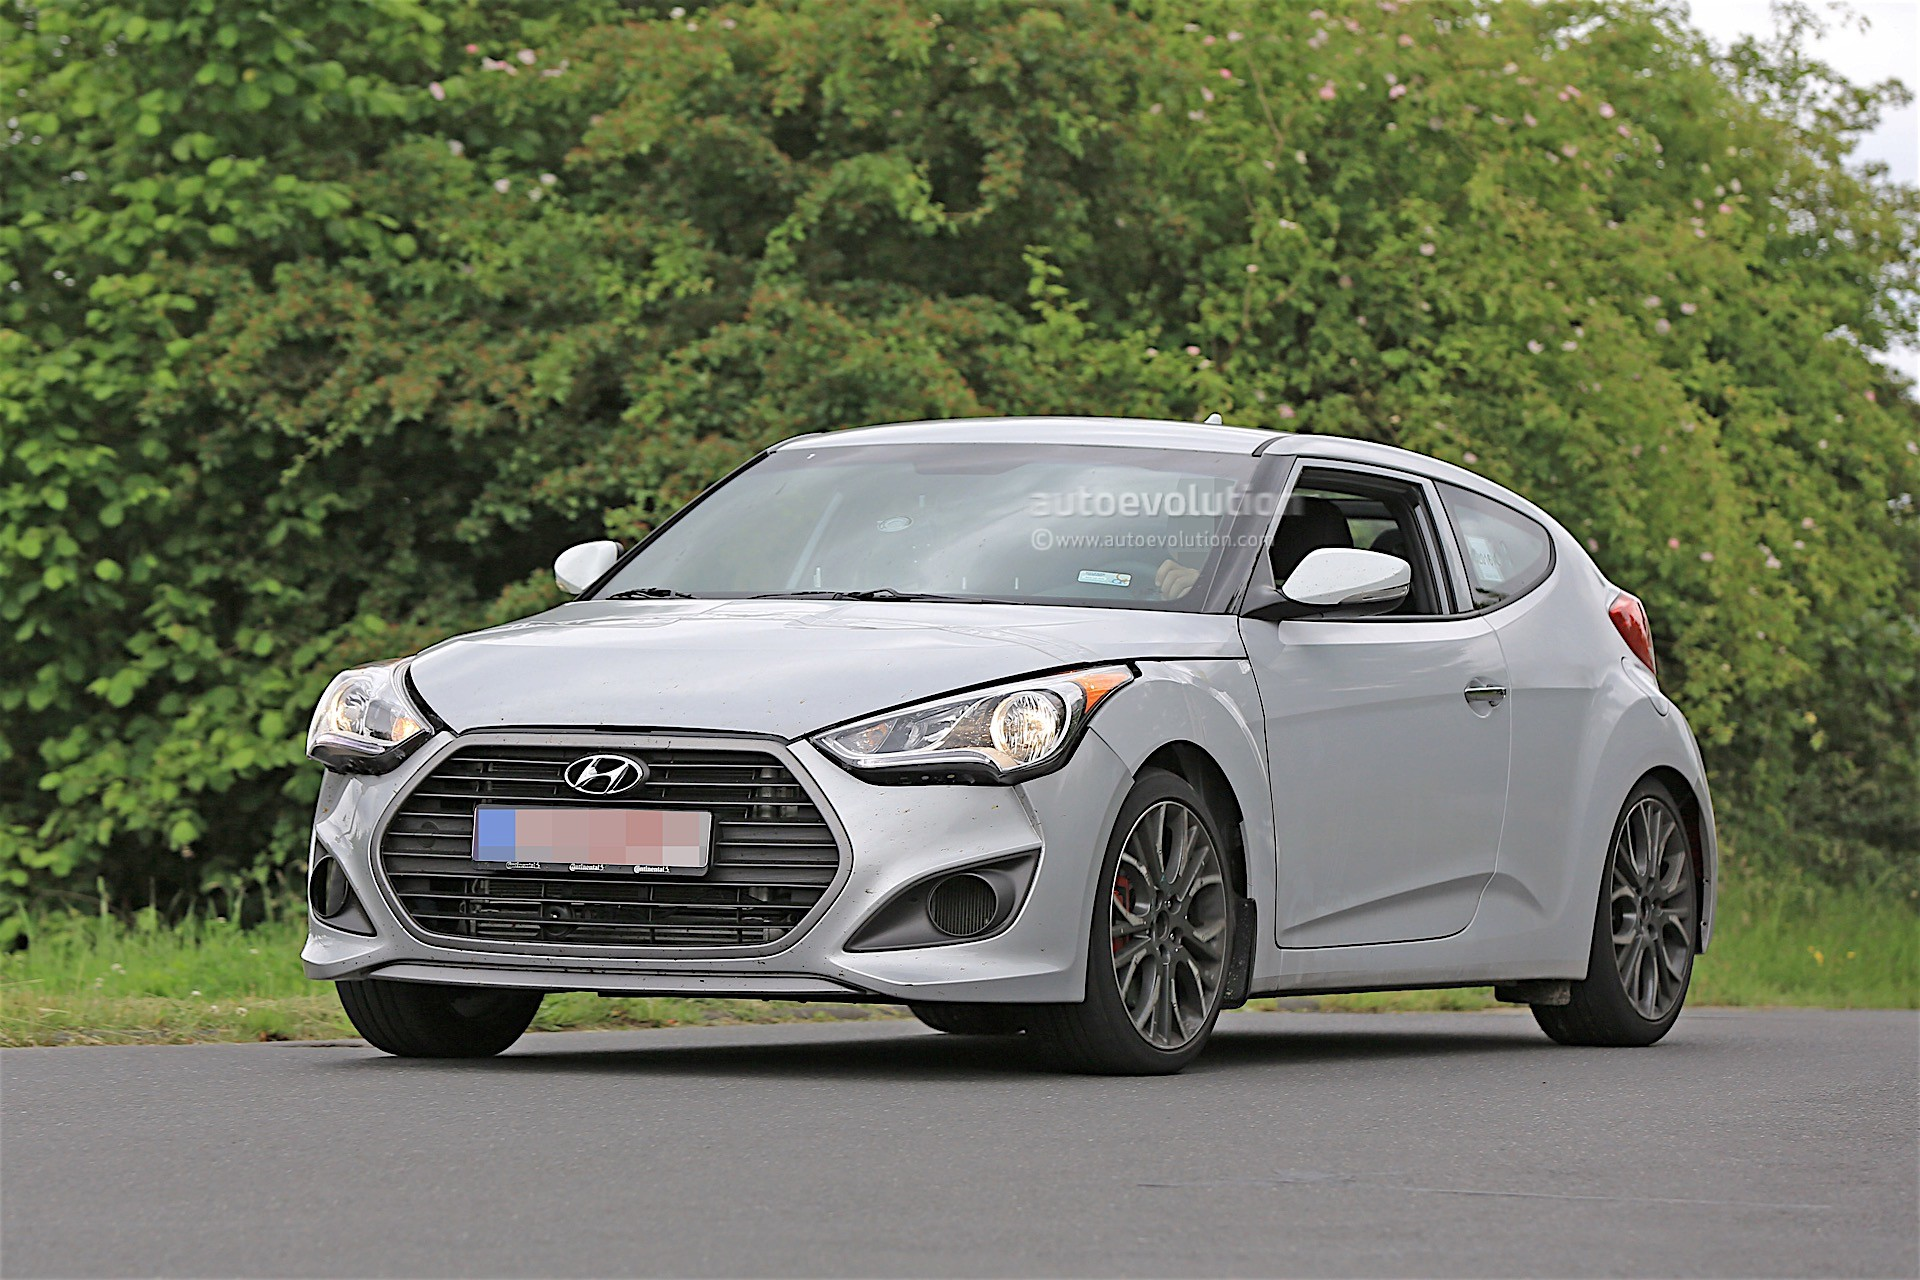 2018 hyundai coupe.  2018 hyundai veloster chassis mule in 2018 hyundai coupe